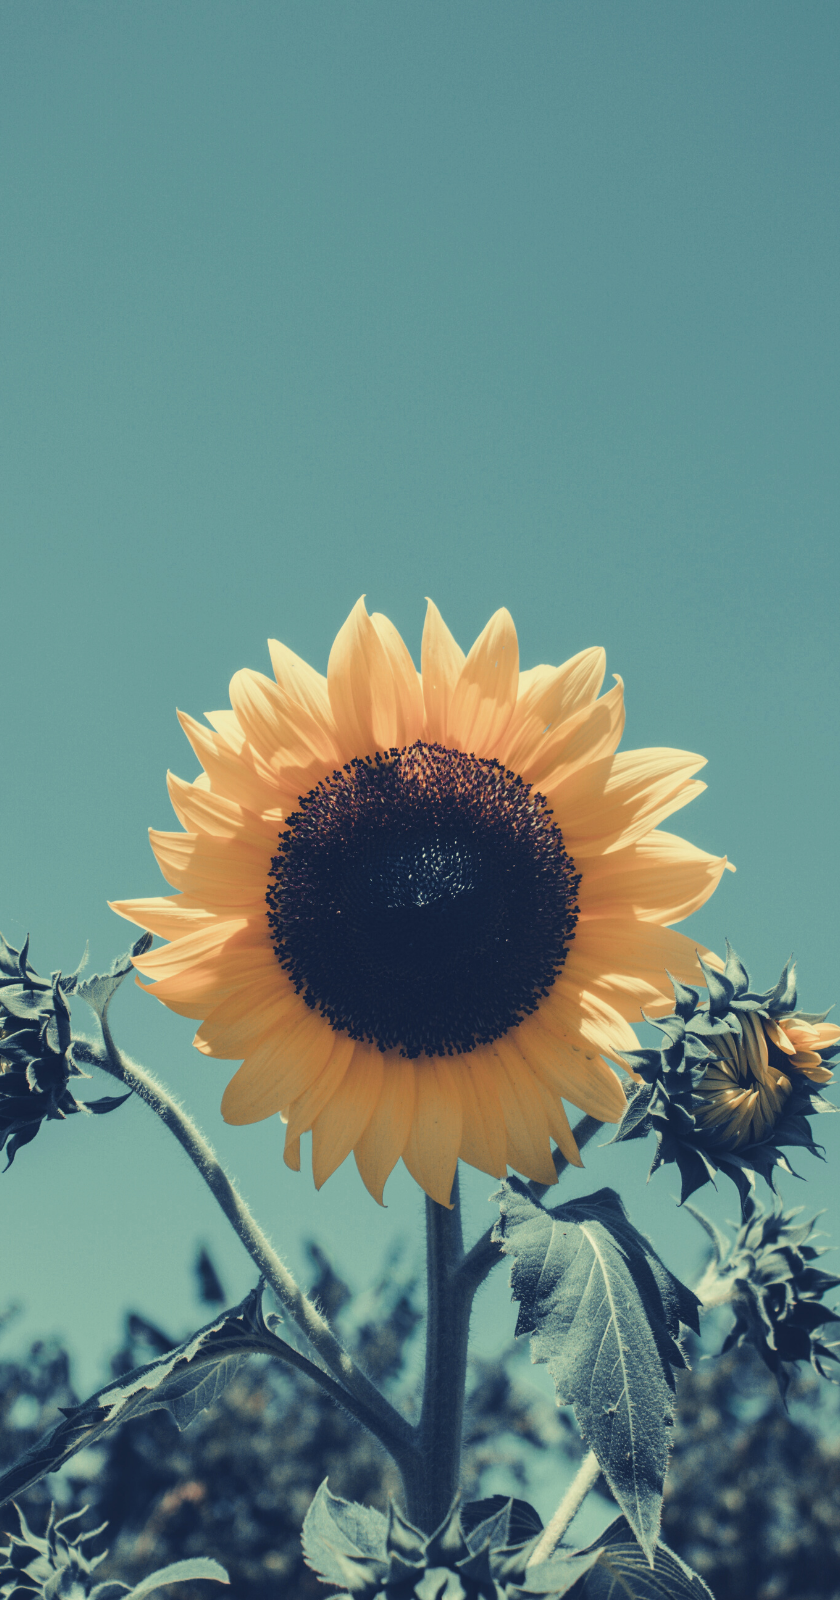 Wallpapers For Iphone In 2020 Sunflower Wallpaper Sunflower Pictures Sunflowers Background